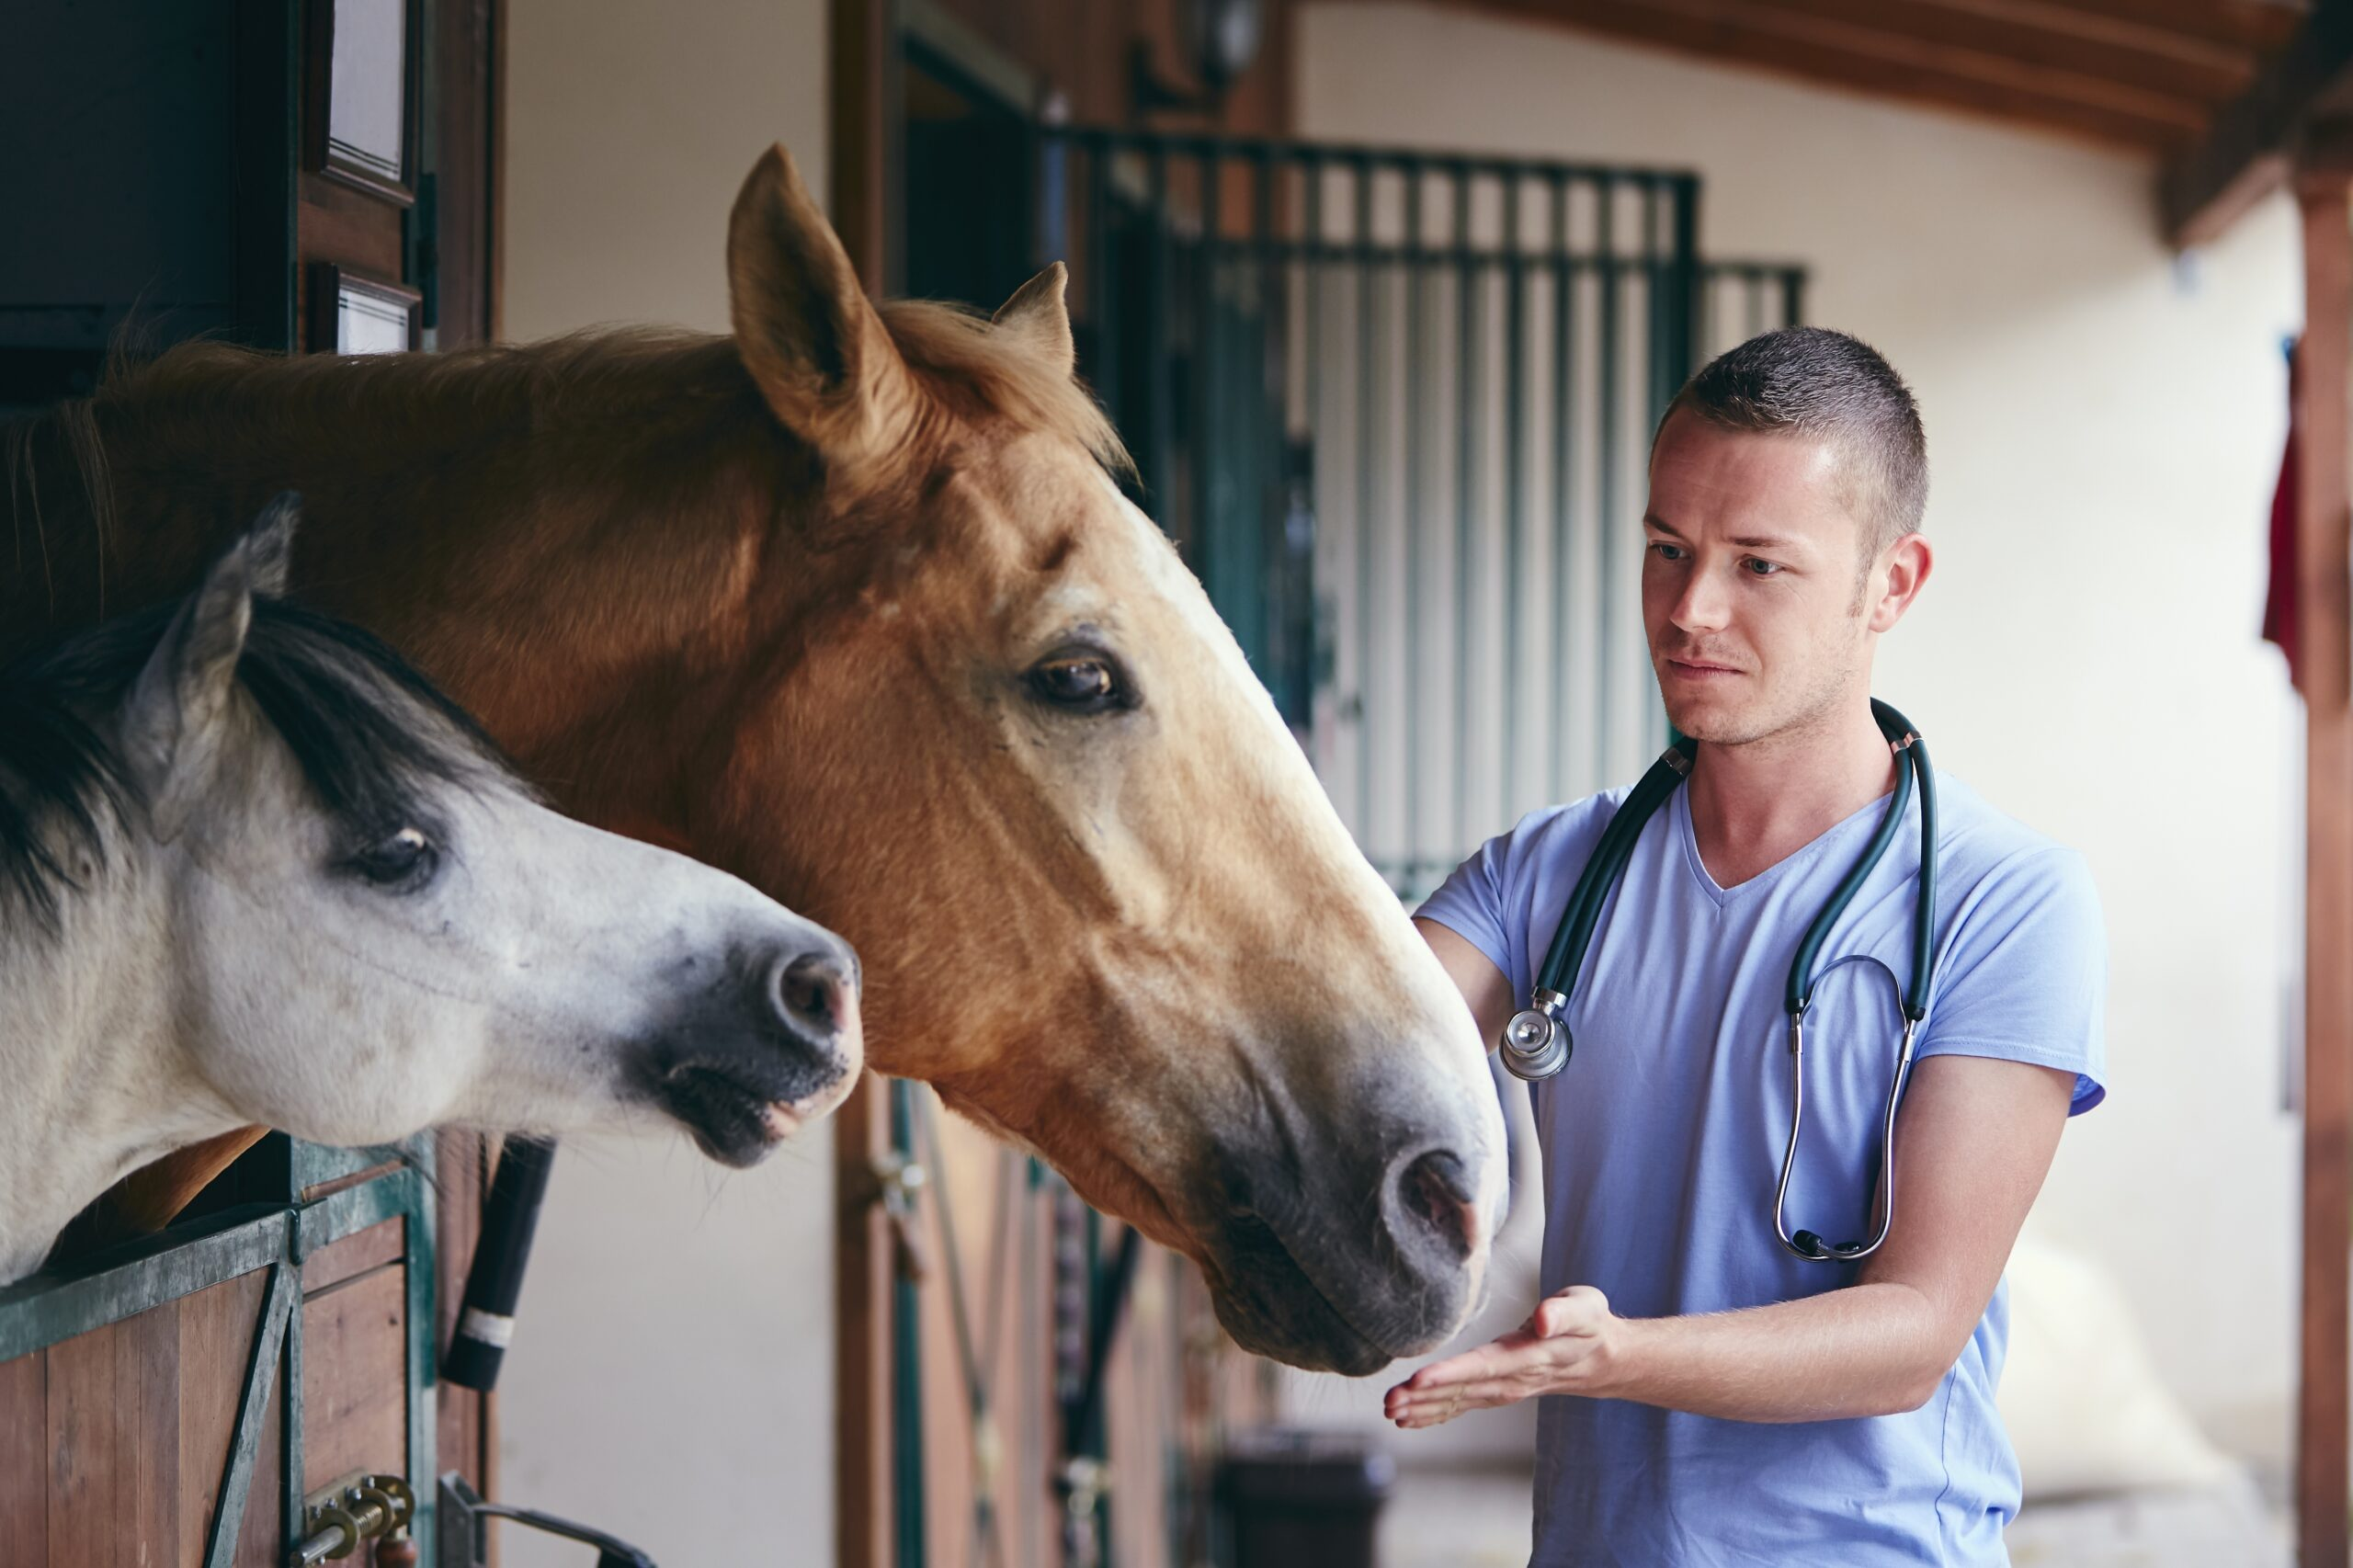 Veterinarian during medical care of horses in stables.